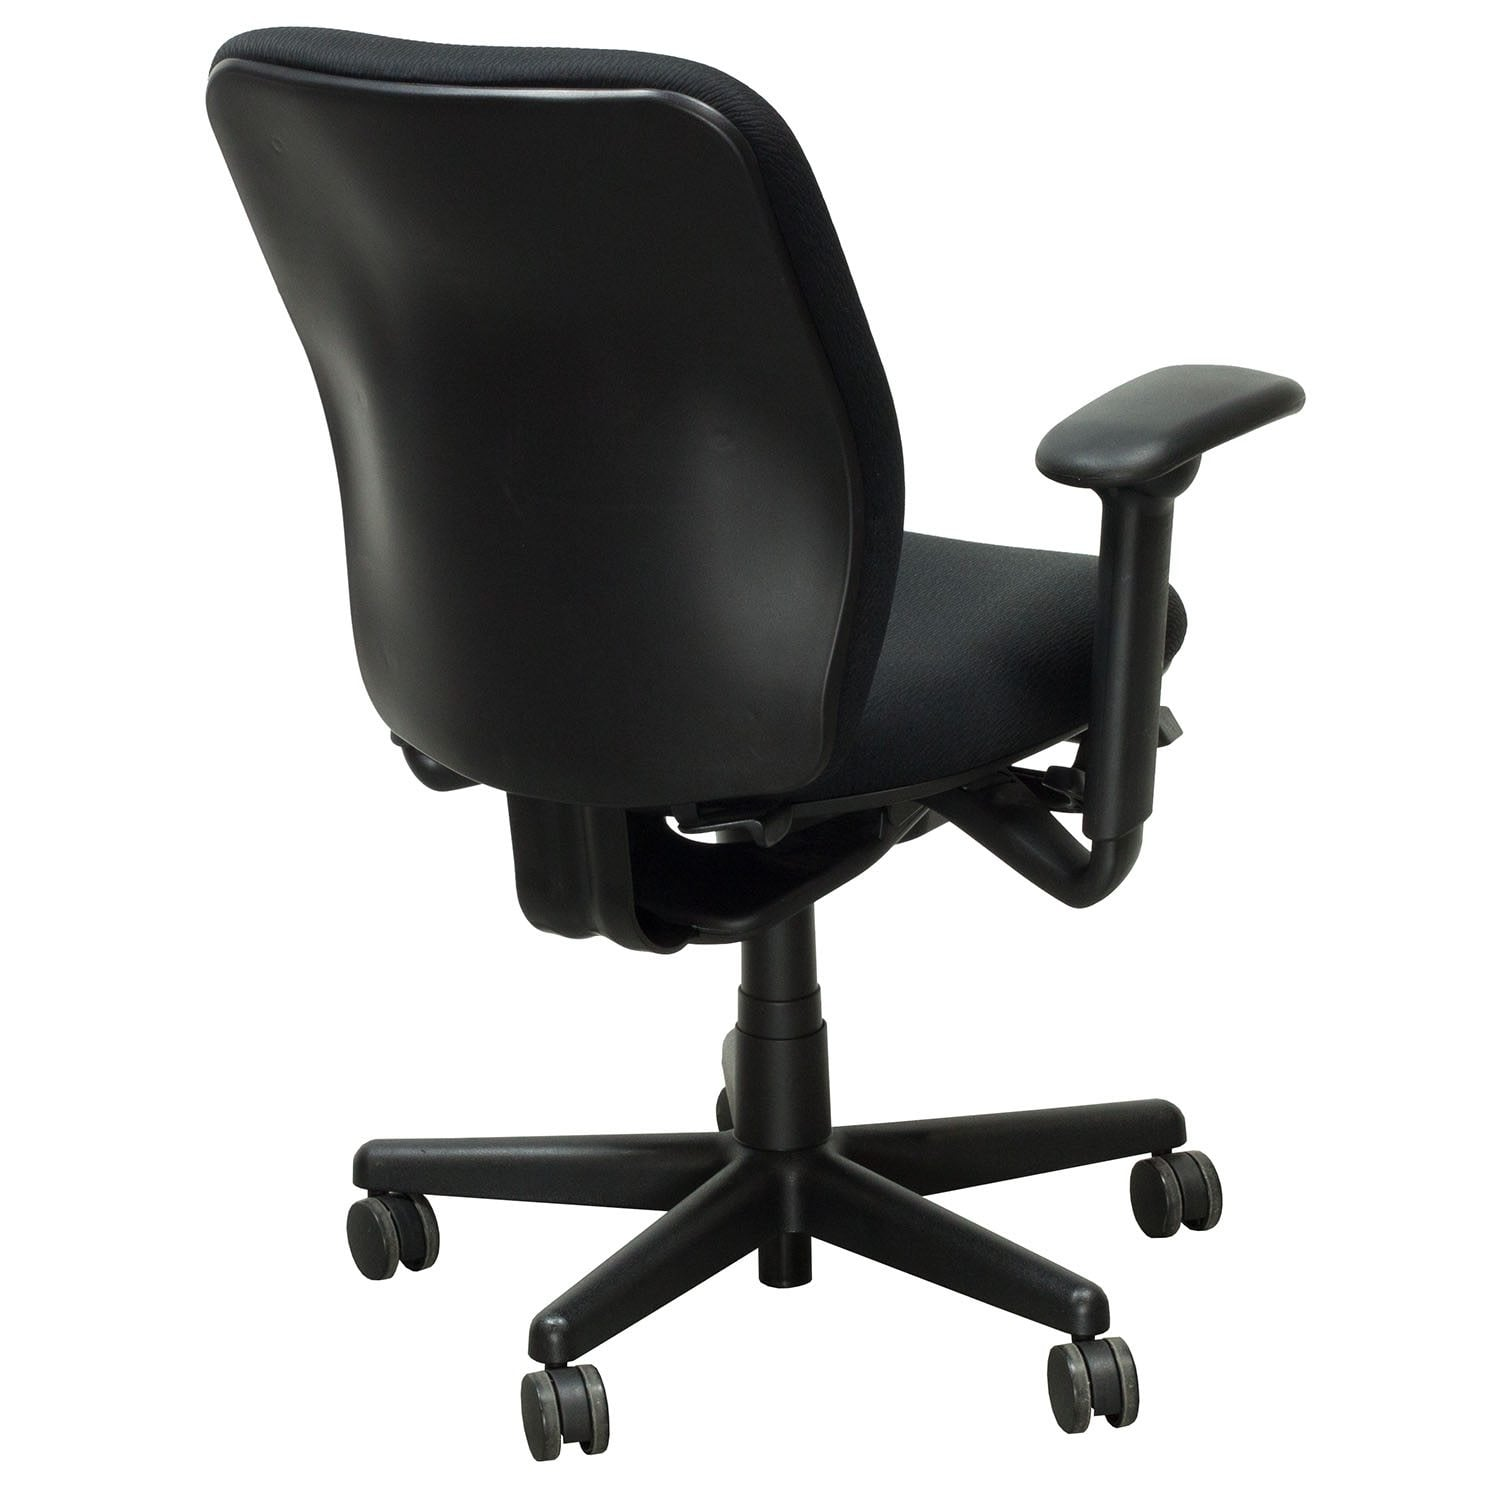 Ki Chairs Ki Engage Used Task Chair Black Pattern National Office